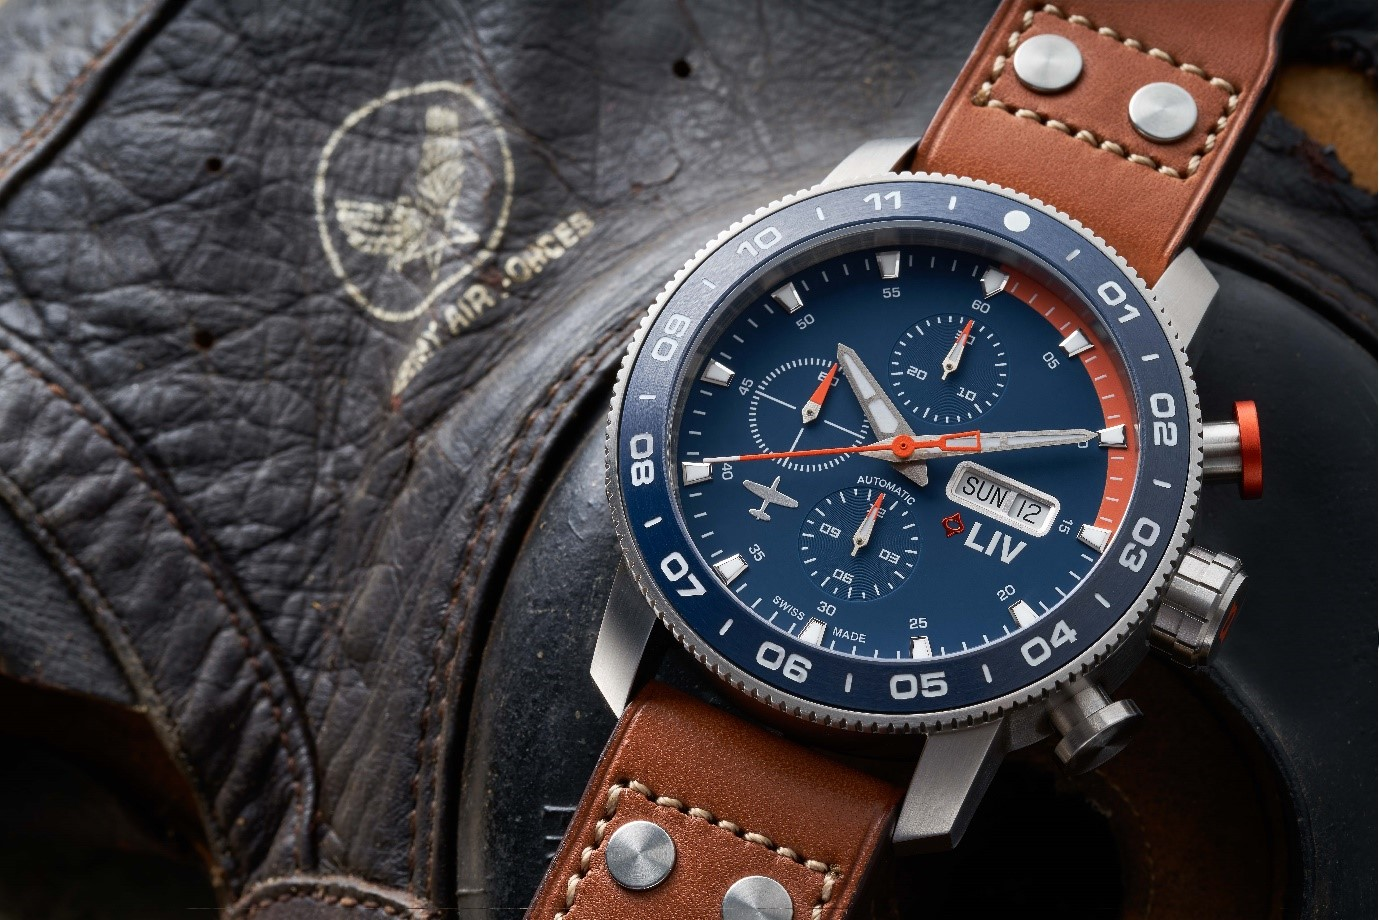 LIV Watches Returns with Stunning GX Limited Edition Swiss Timepieces